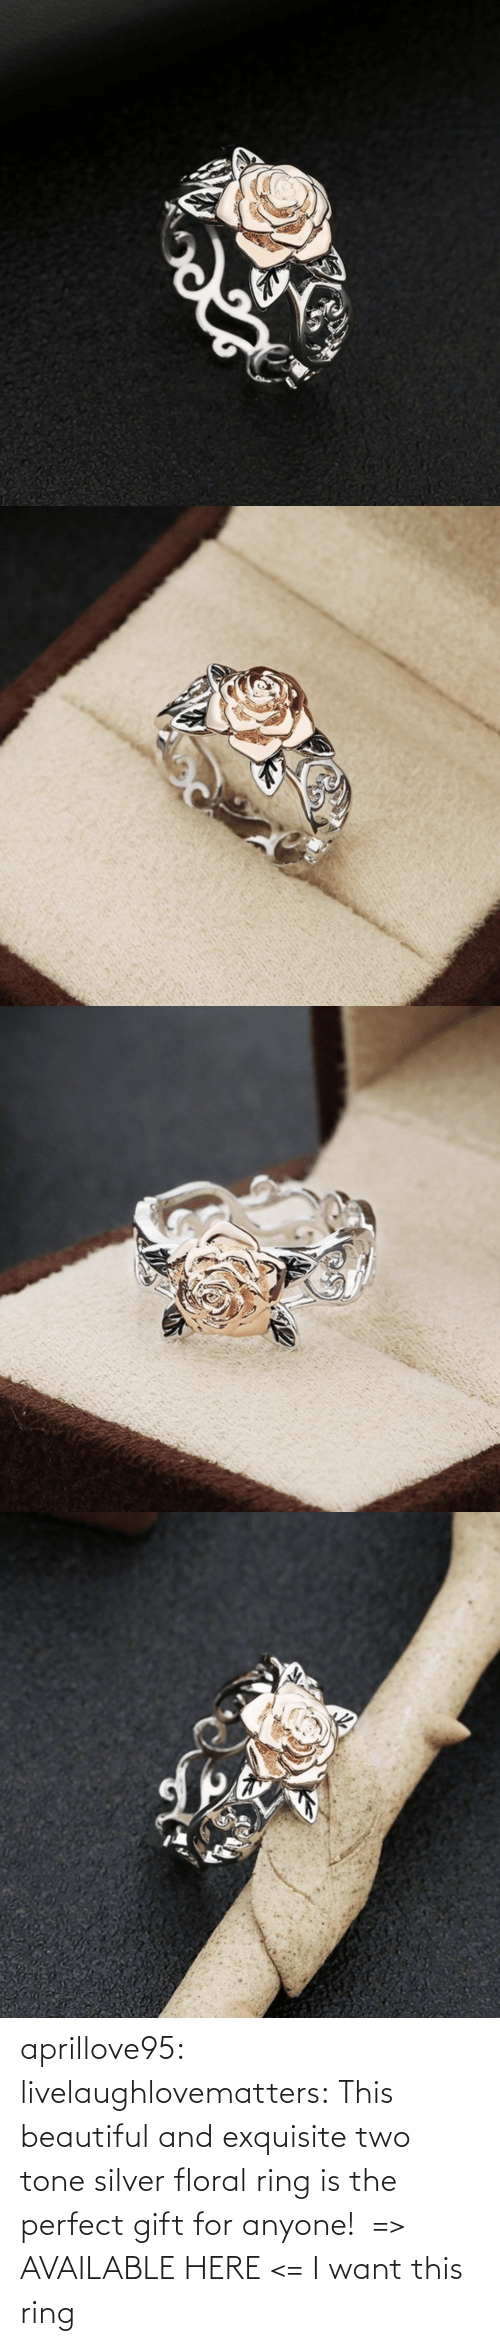 want: aprillove95: livelaughlovematters:  This beautiful and exquisite two tone silver floral ring is the perfect gift for anyone! => AVAILABLE HERE <=    I want this ring